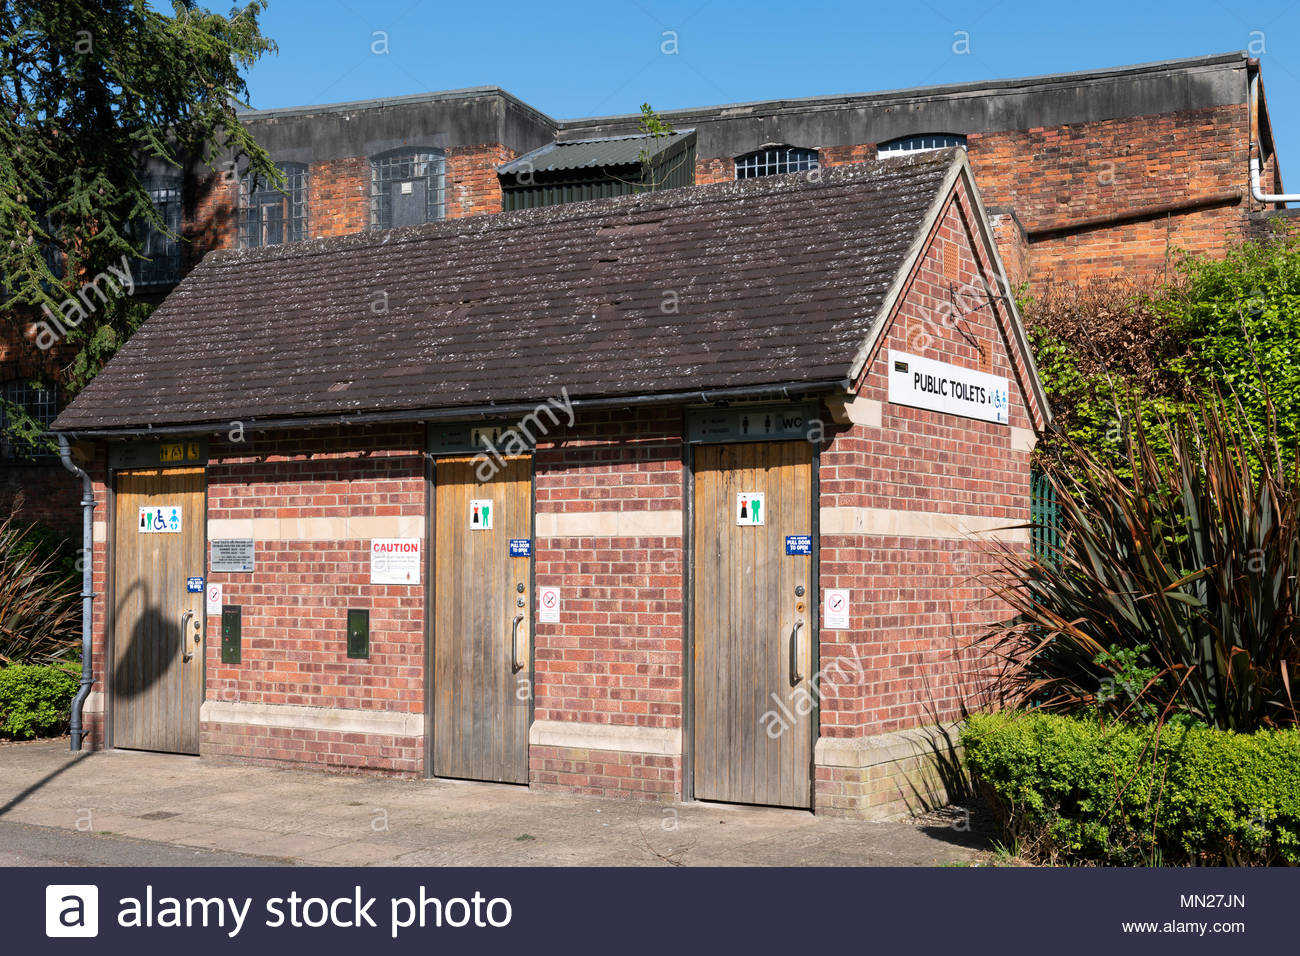 Park toilets, Trowbridge, Wiltshire, England, UK Stock Photo